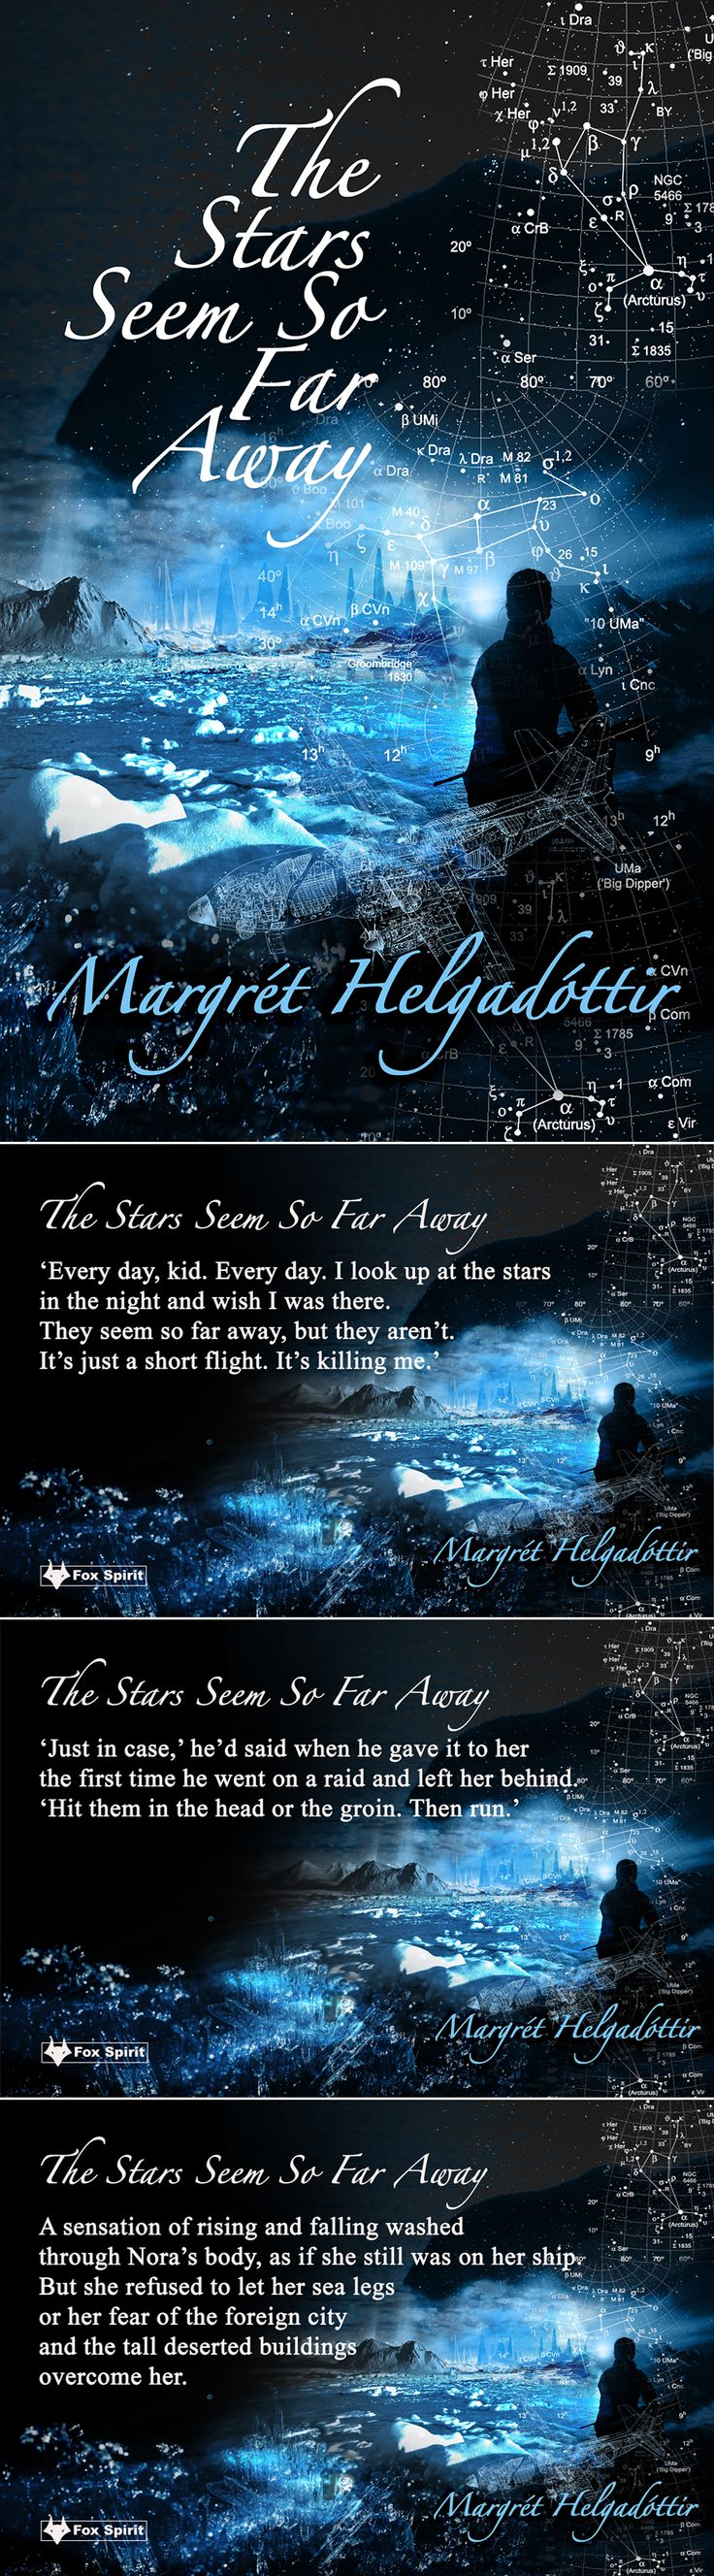 'The Stars Seem So Far Away' by Margret Helgadottir. Book cover design & promotional postcards for Fox Spirit Books.